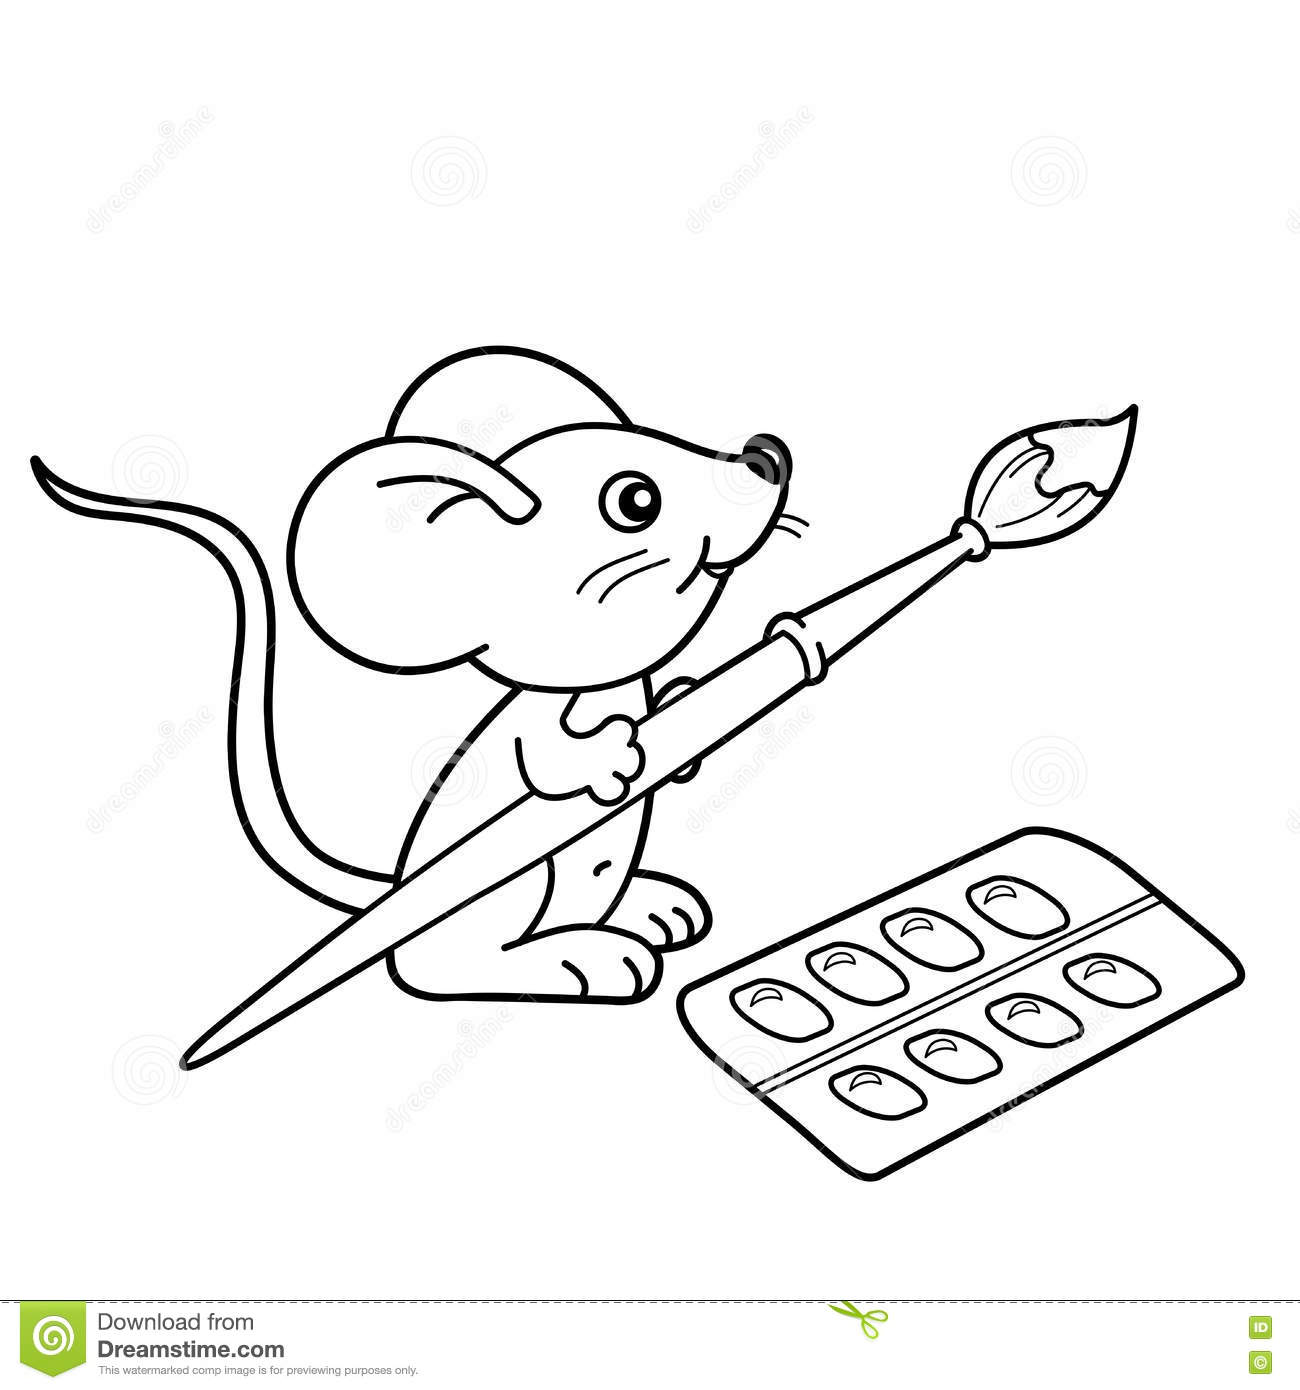 little mouse coloring pages - photo#23